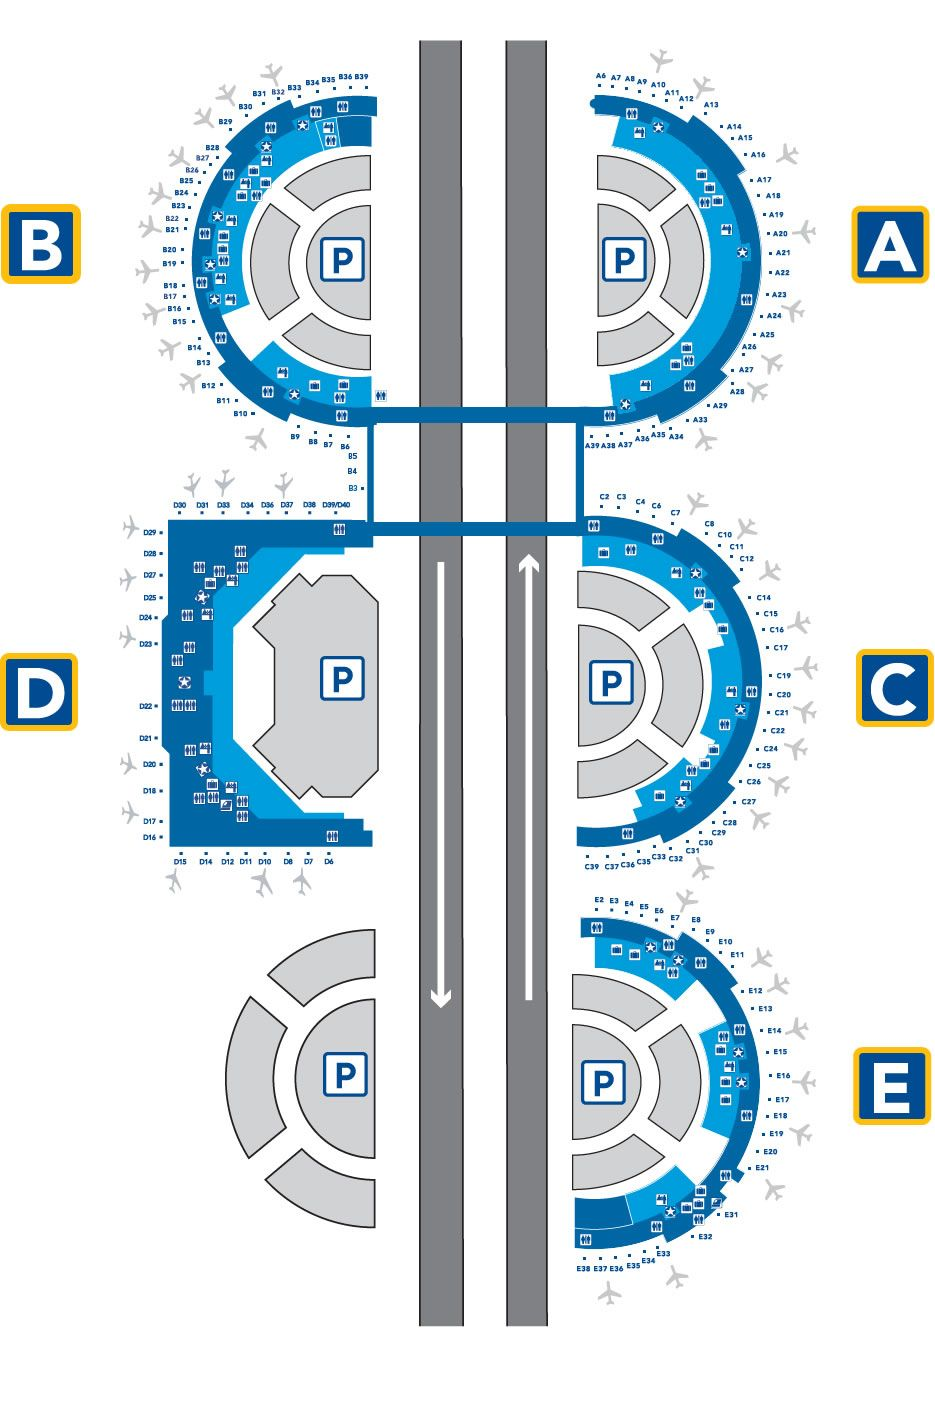 Dallas Airport Terminal Map DFW Airport Terminal Layout. One of the easiest airport to